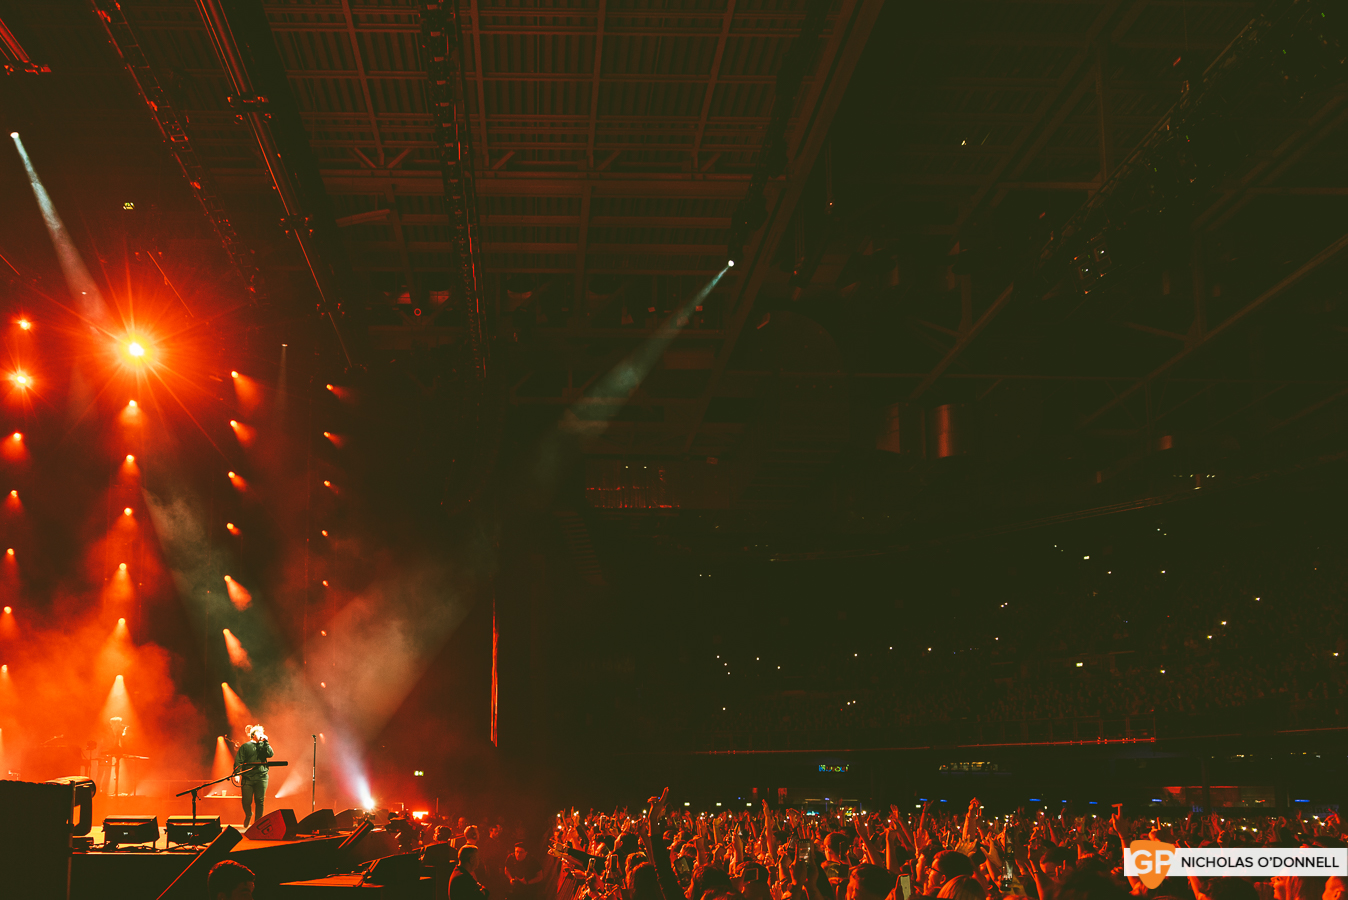 Lewis Capaldi performing in the 3Arena. Photos by Nicholas O'Donnell.